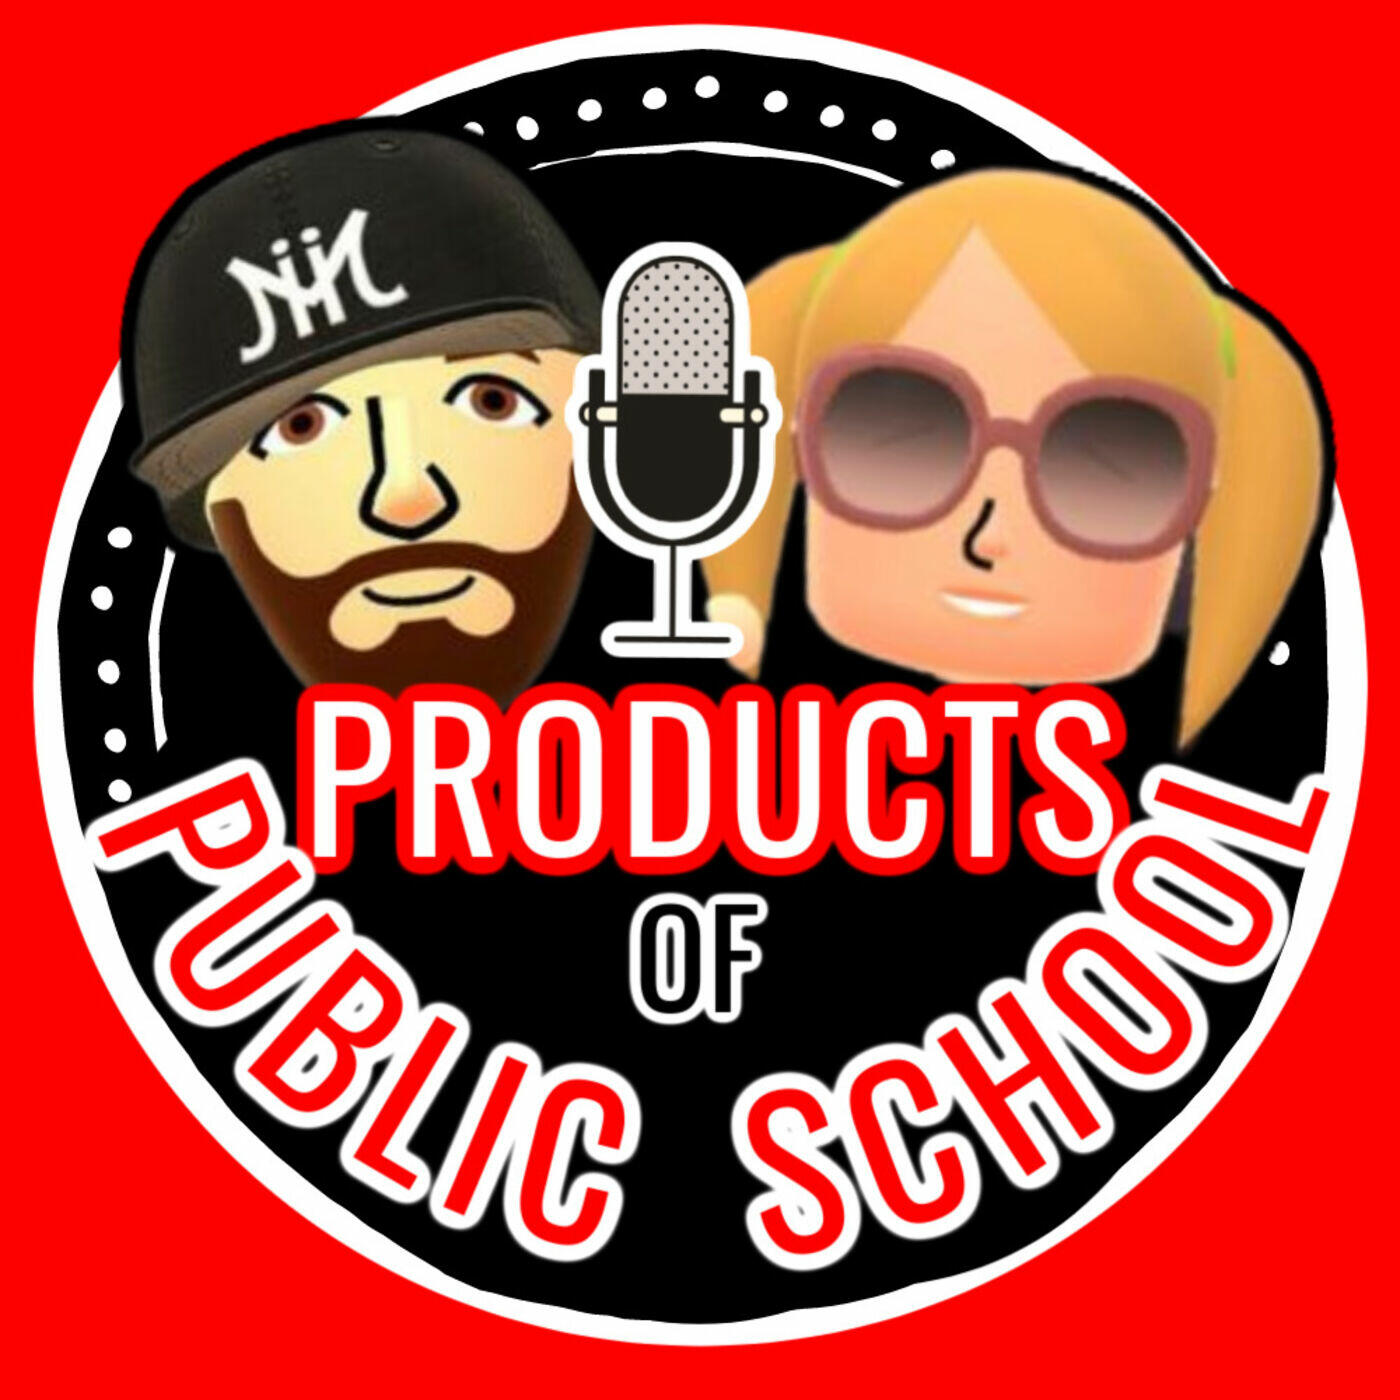 The Products of Public School